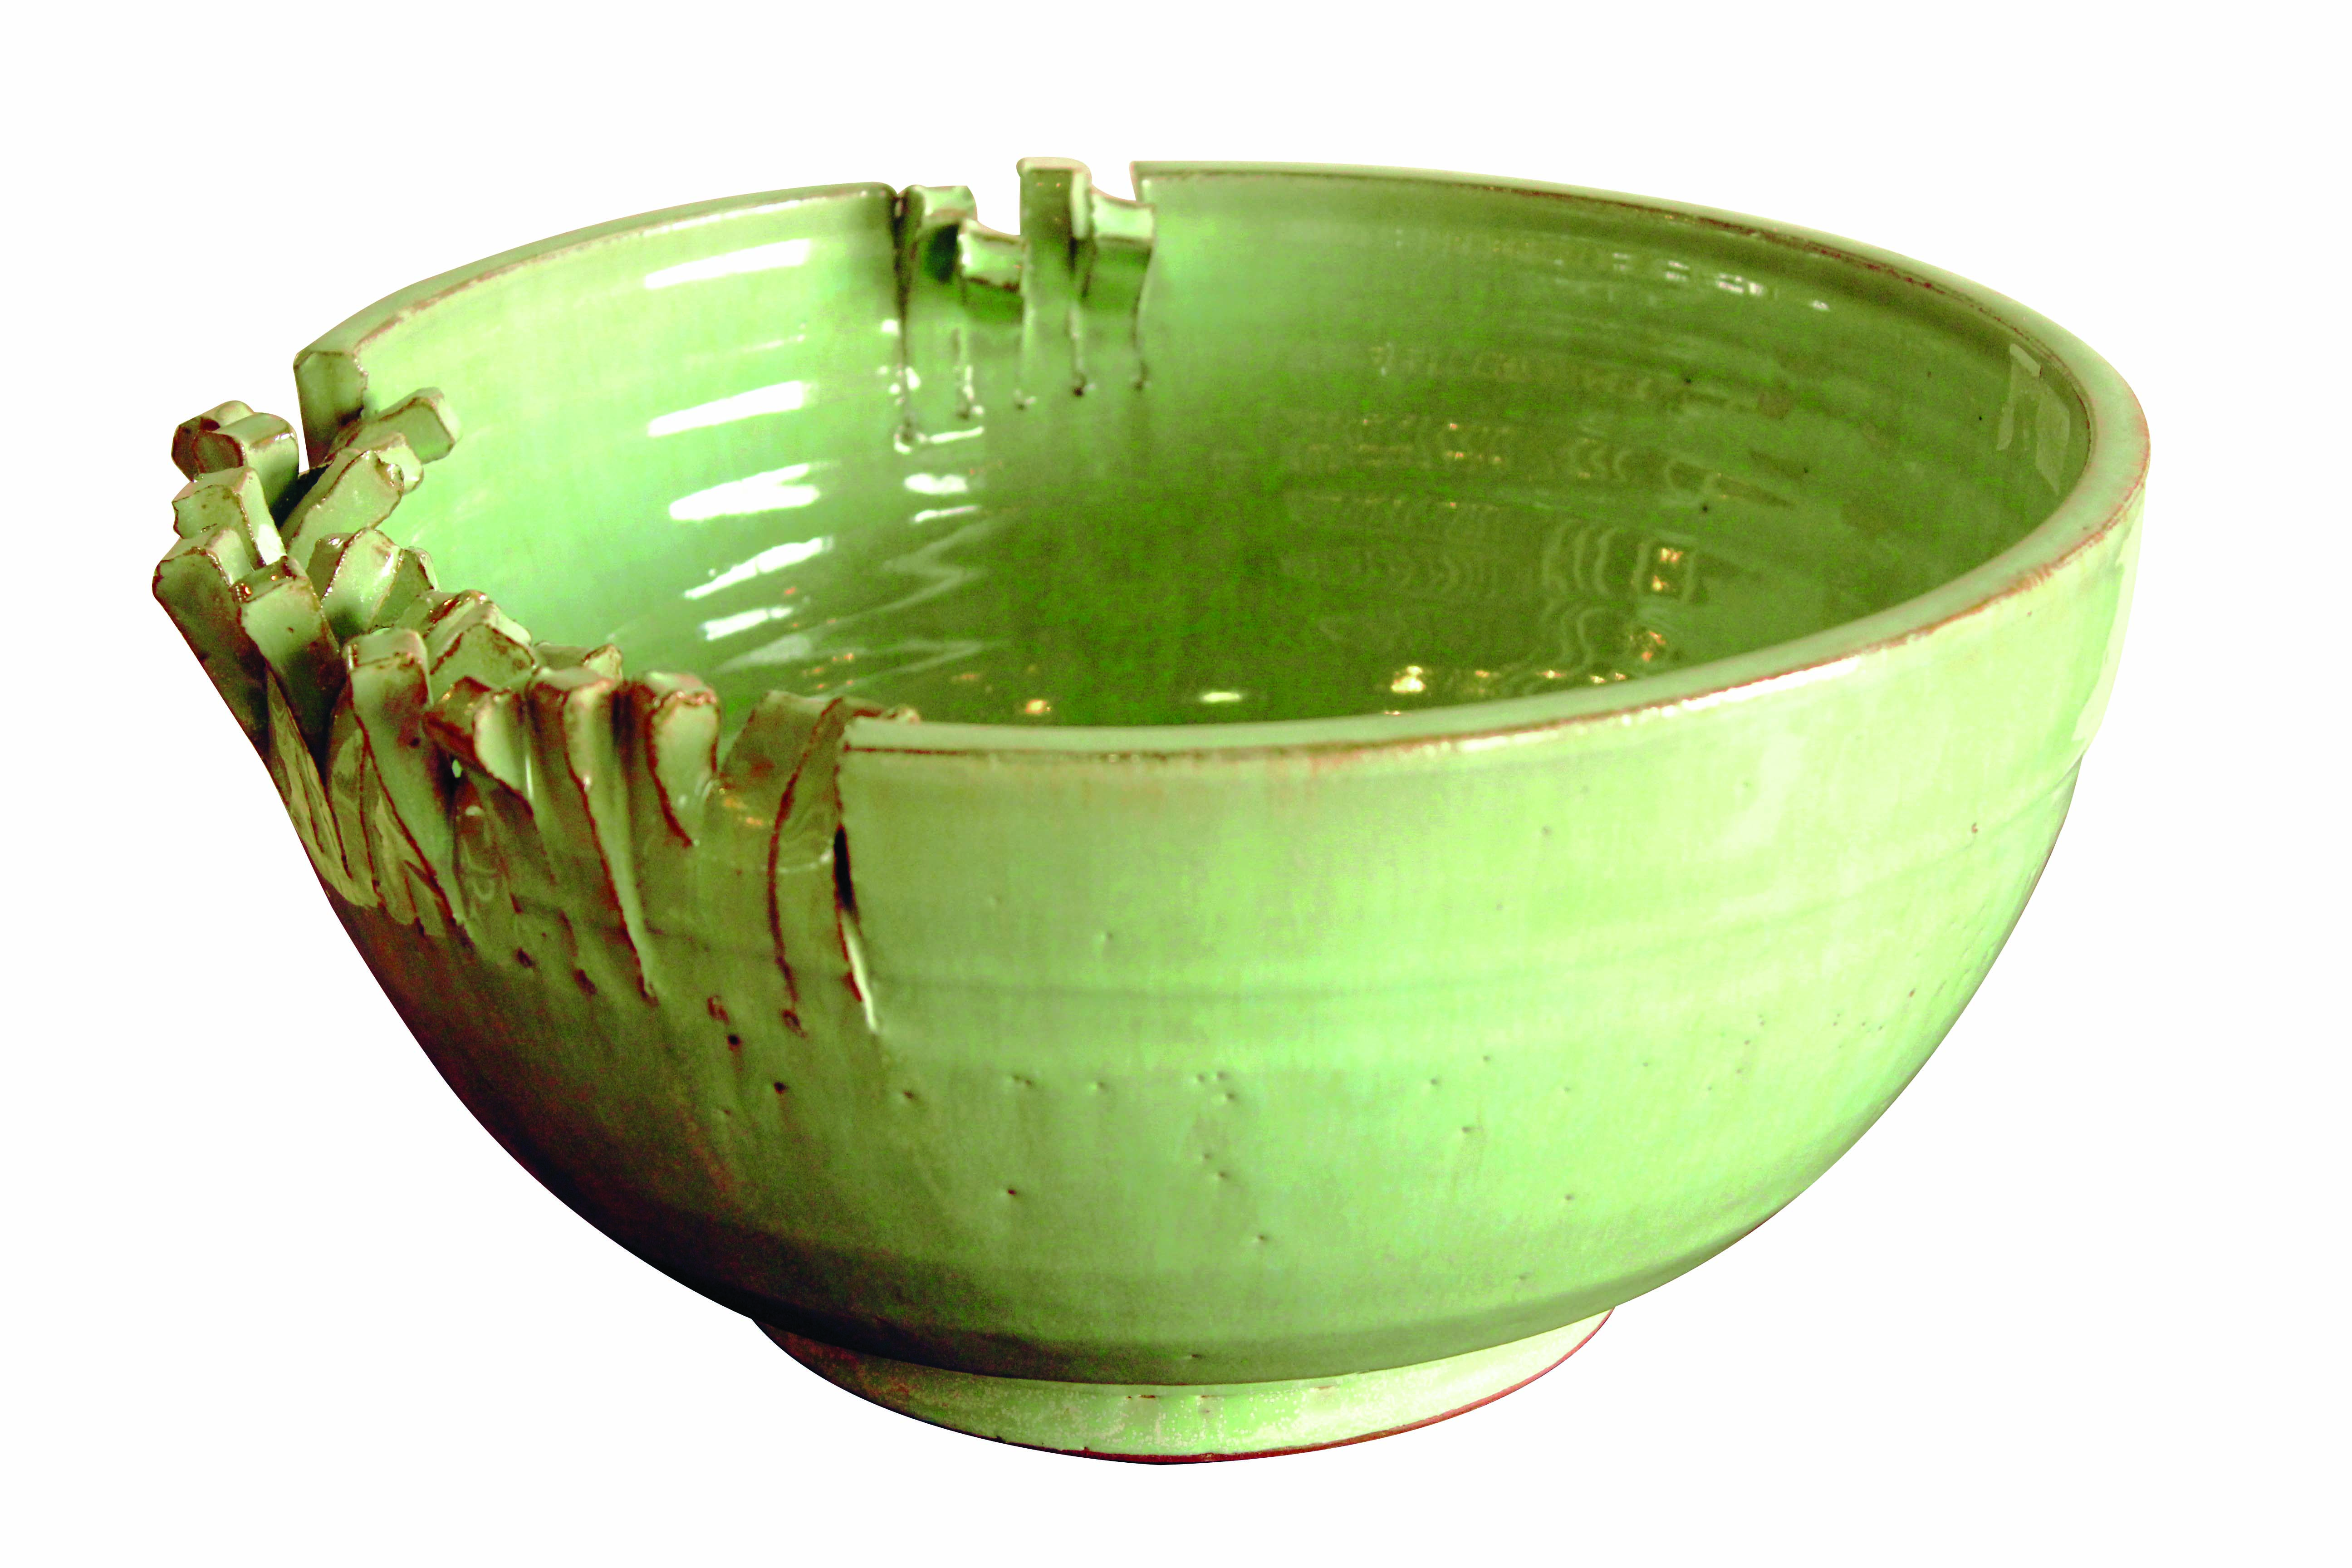 Green Porcelain Vase from Furniture Republic